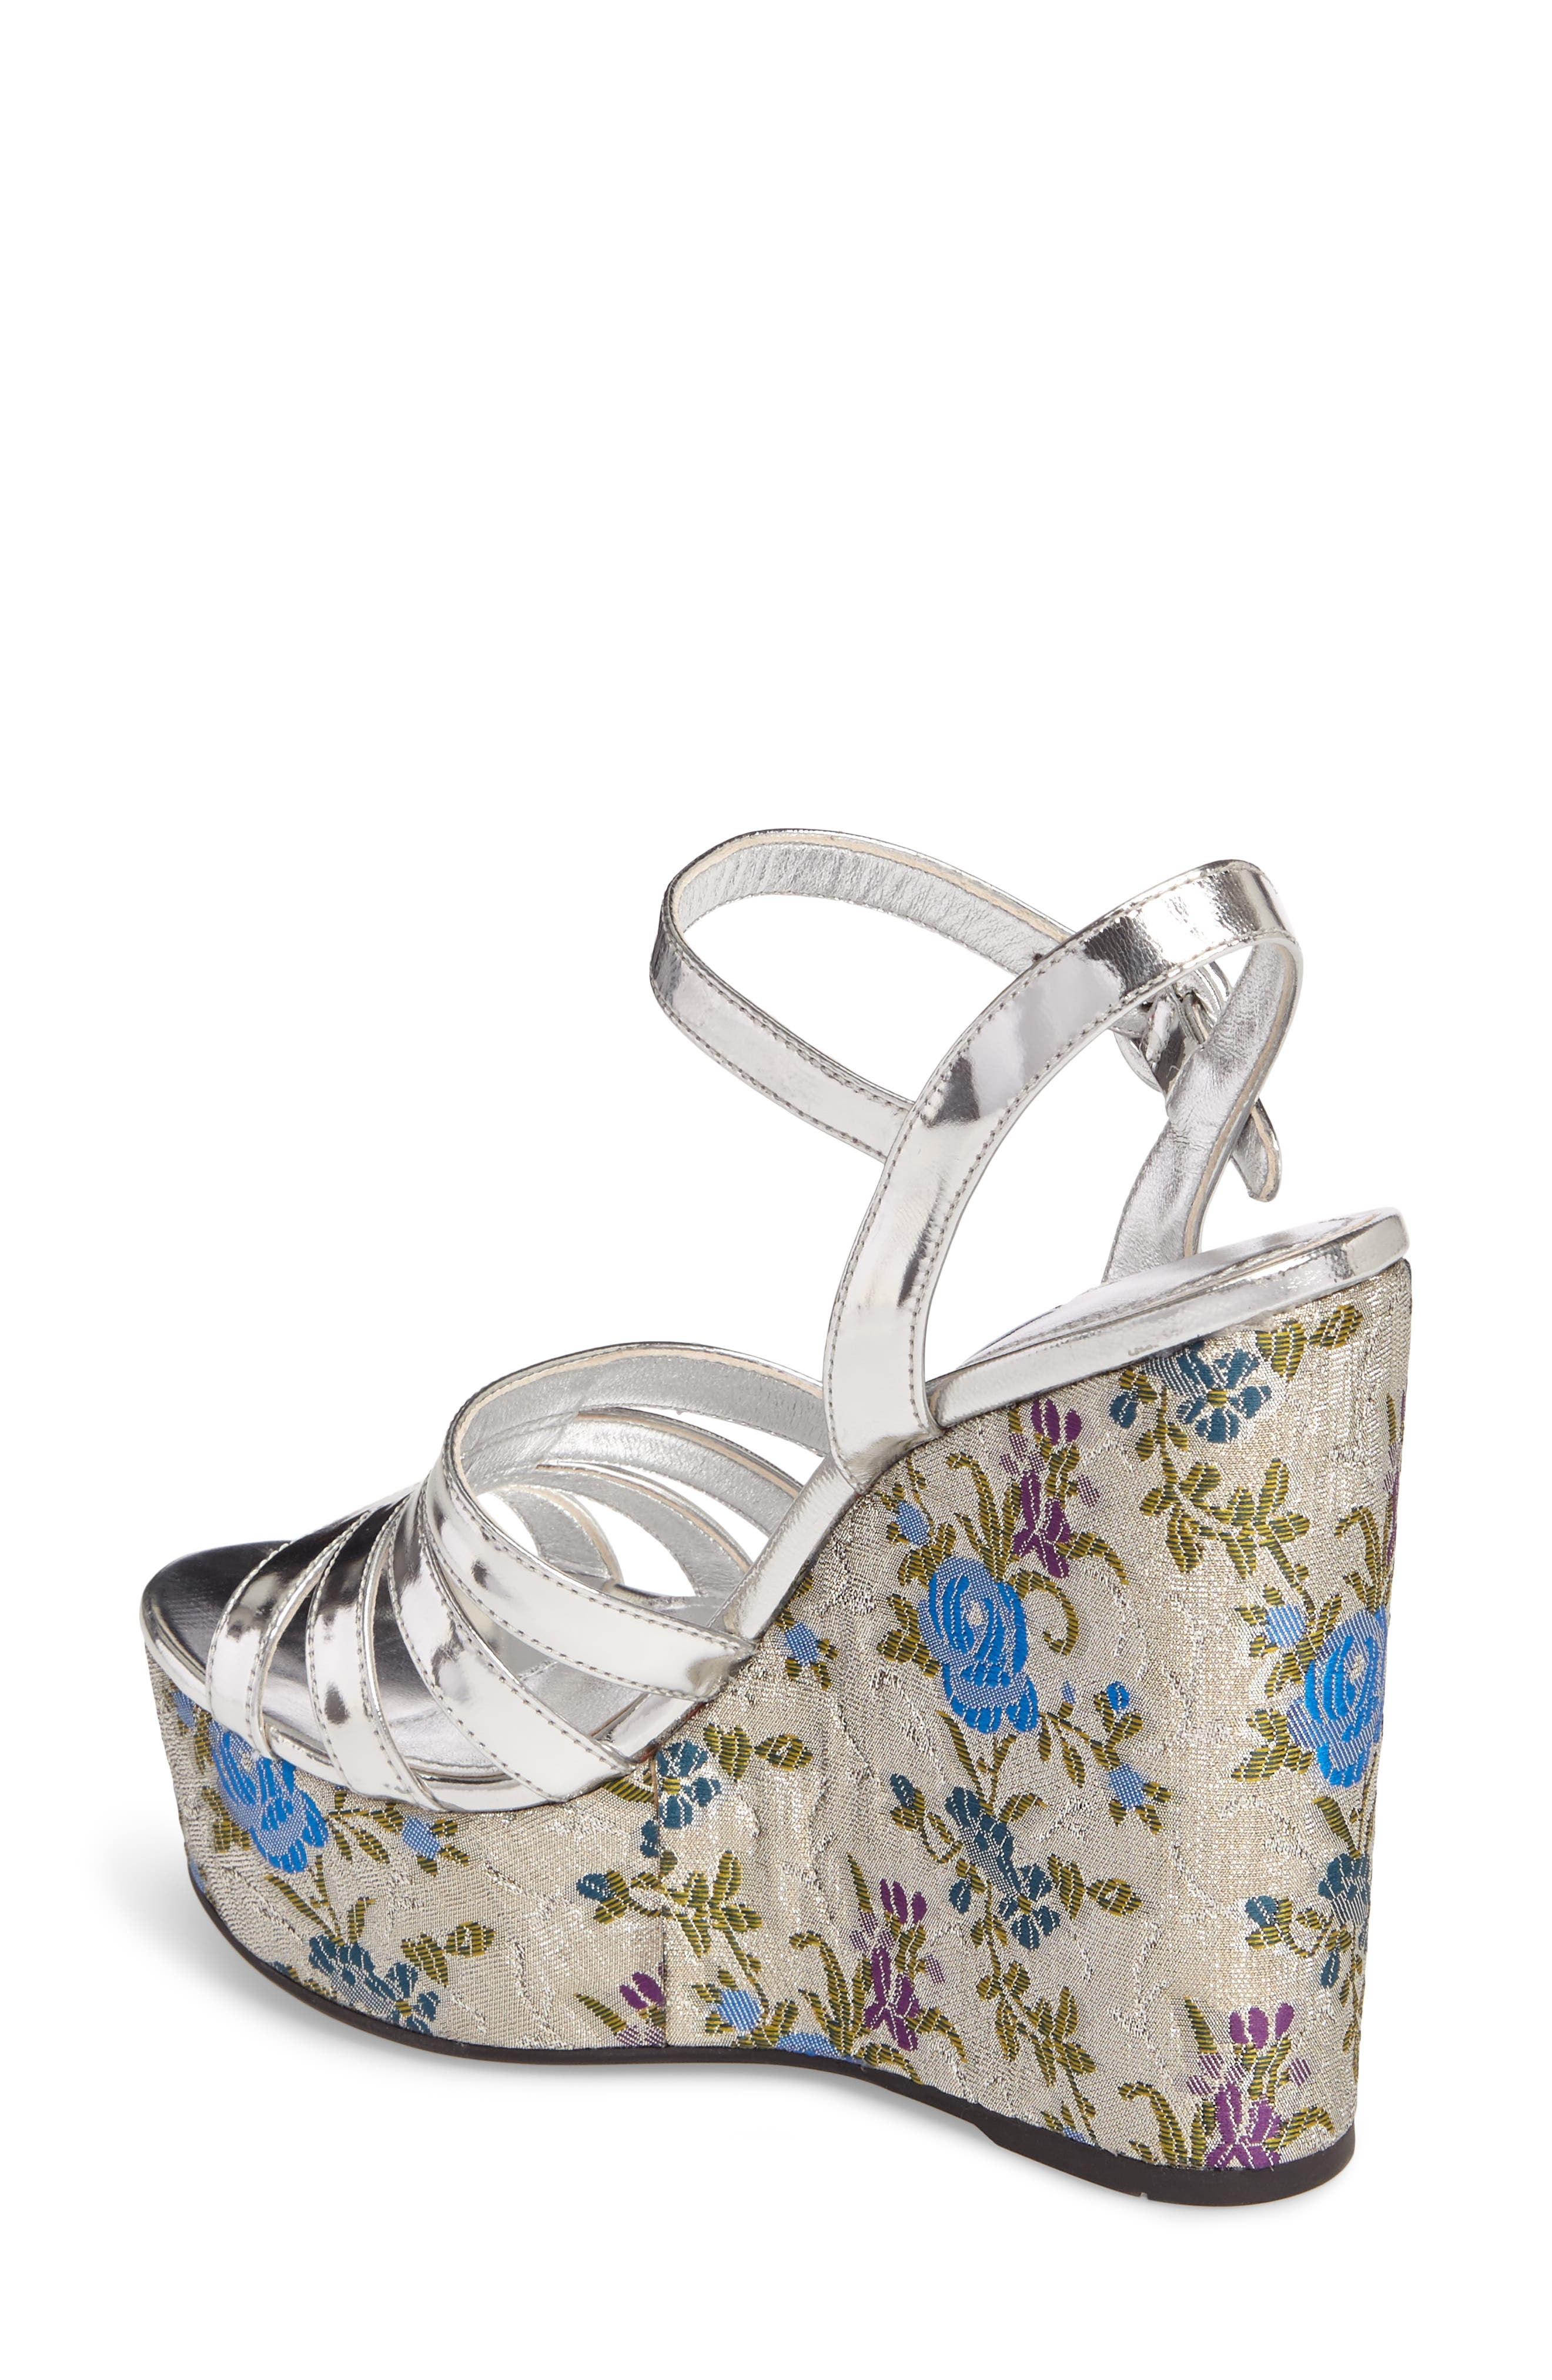 Floral Wedge Platform Sandals,                             Alternate thumbnail 2, color,                             041